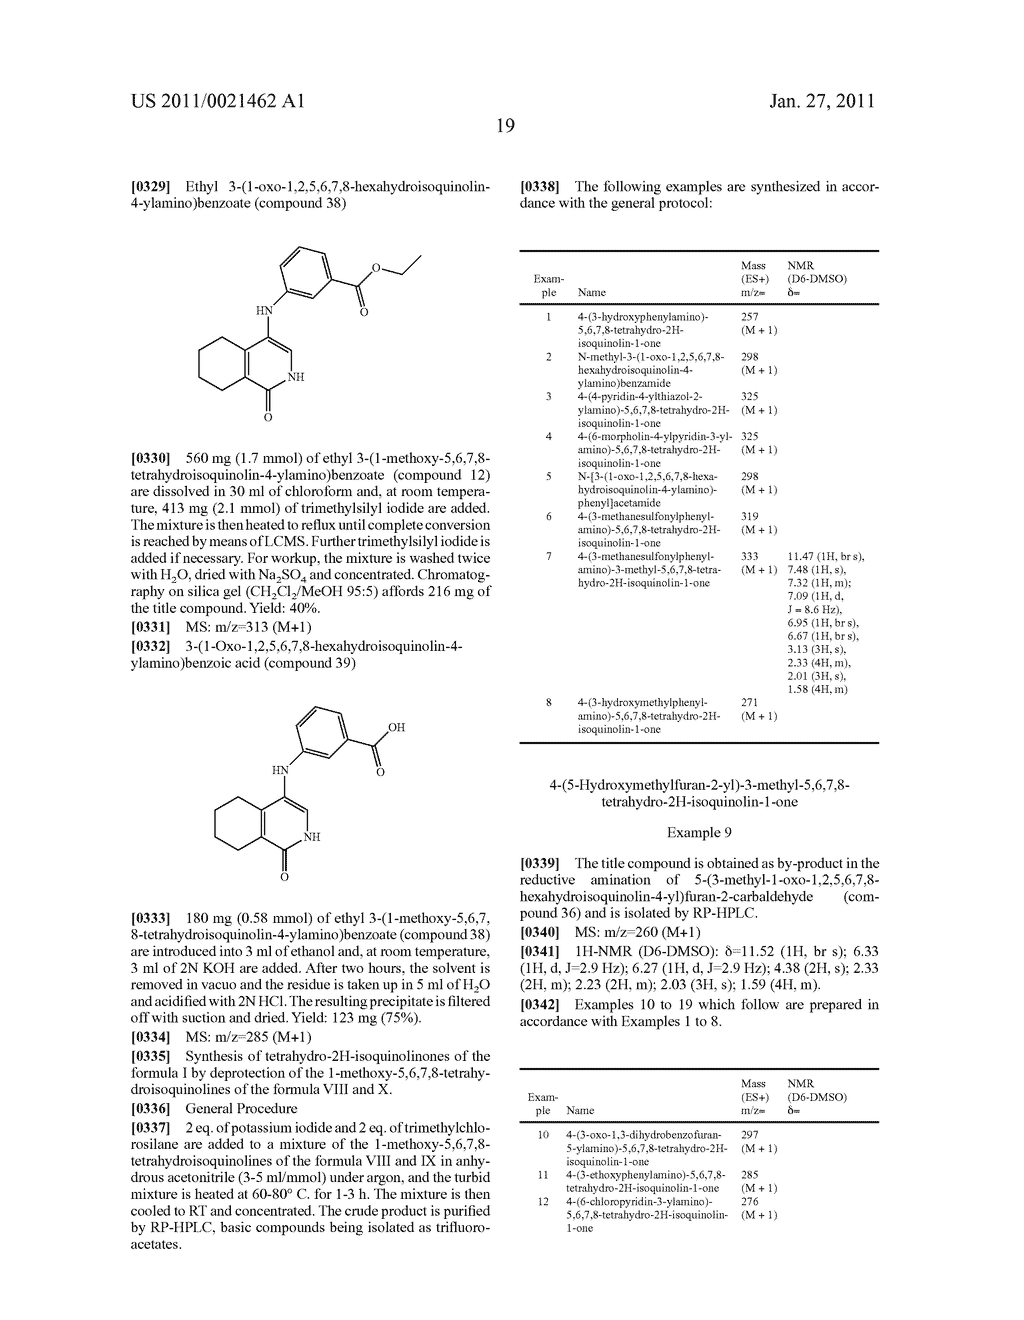 SUBSTITUTED TETRAHYDRO-2H-ISOQUINOLIN-1-ONE DERIVATIVES, AND METHODS FOR THE PRODUCTION AND USE THEREOF - diagram, schematic, and image 20